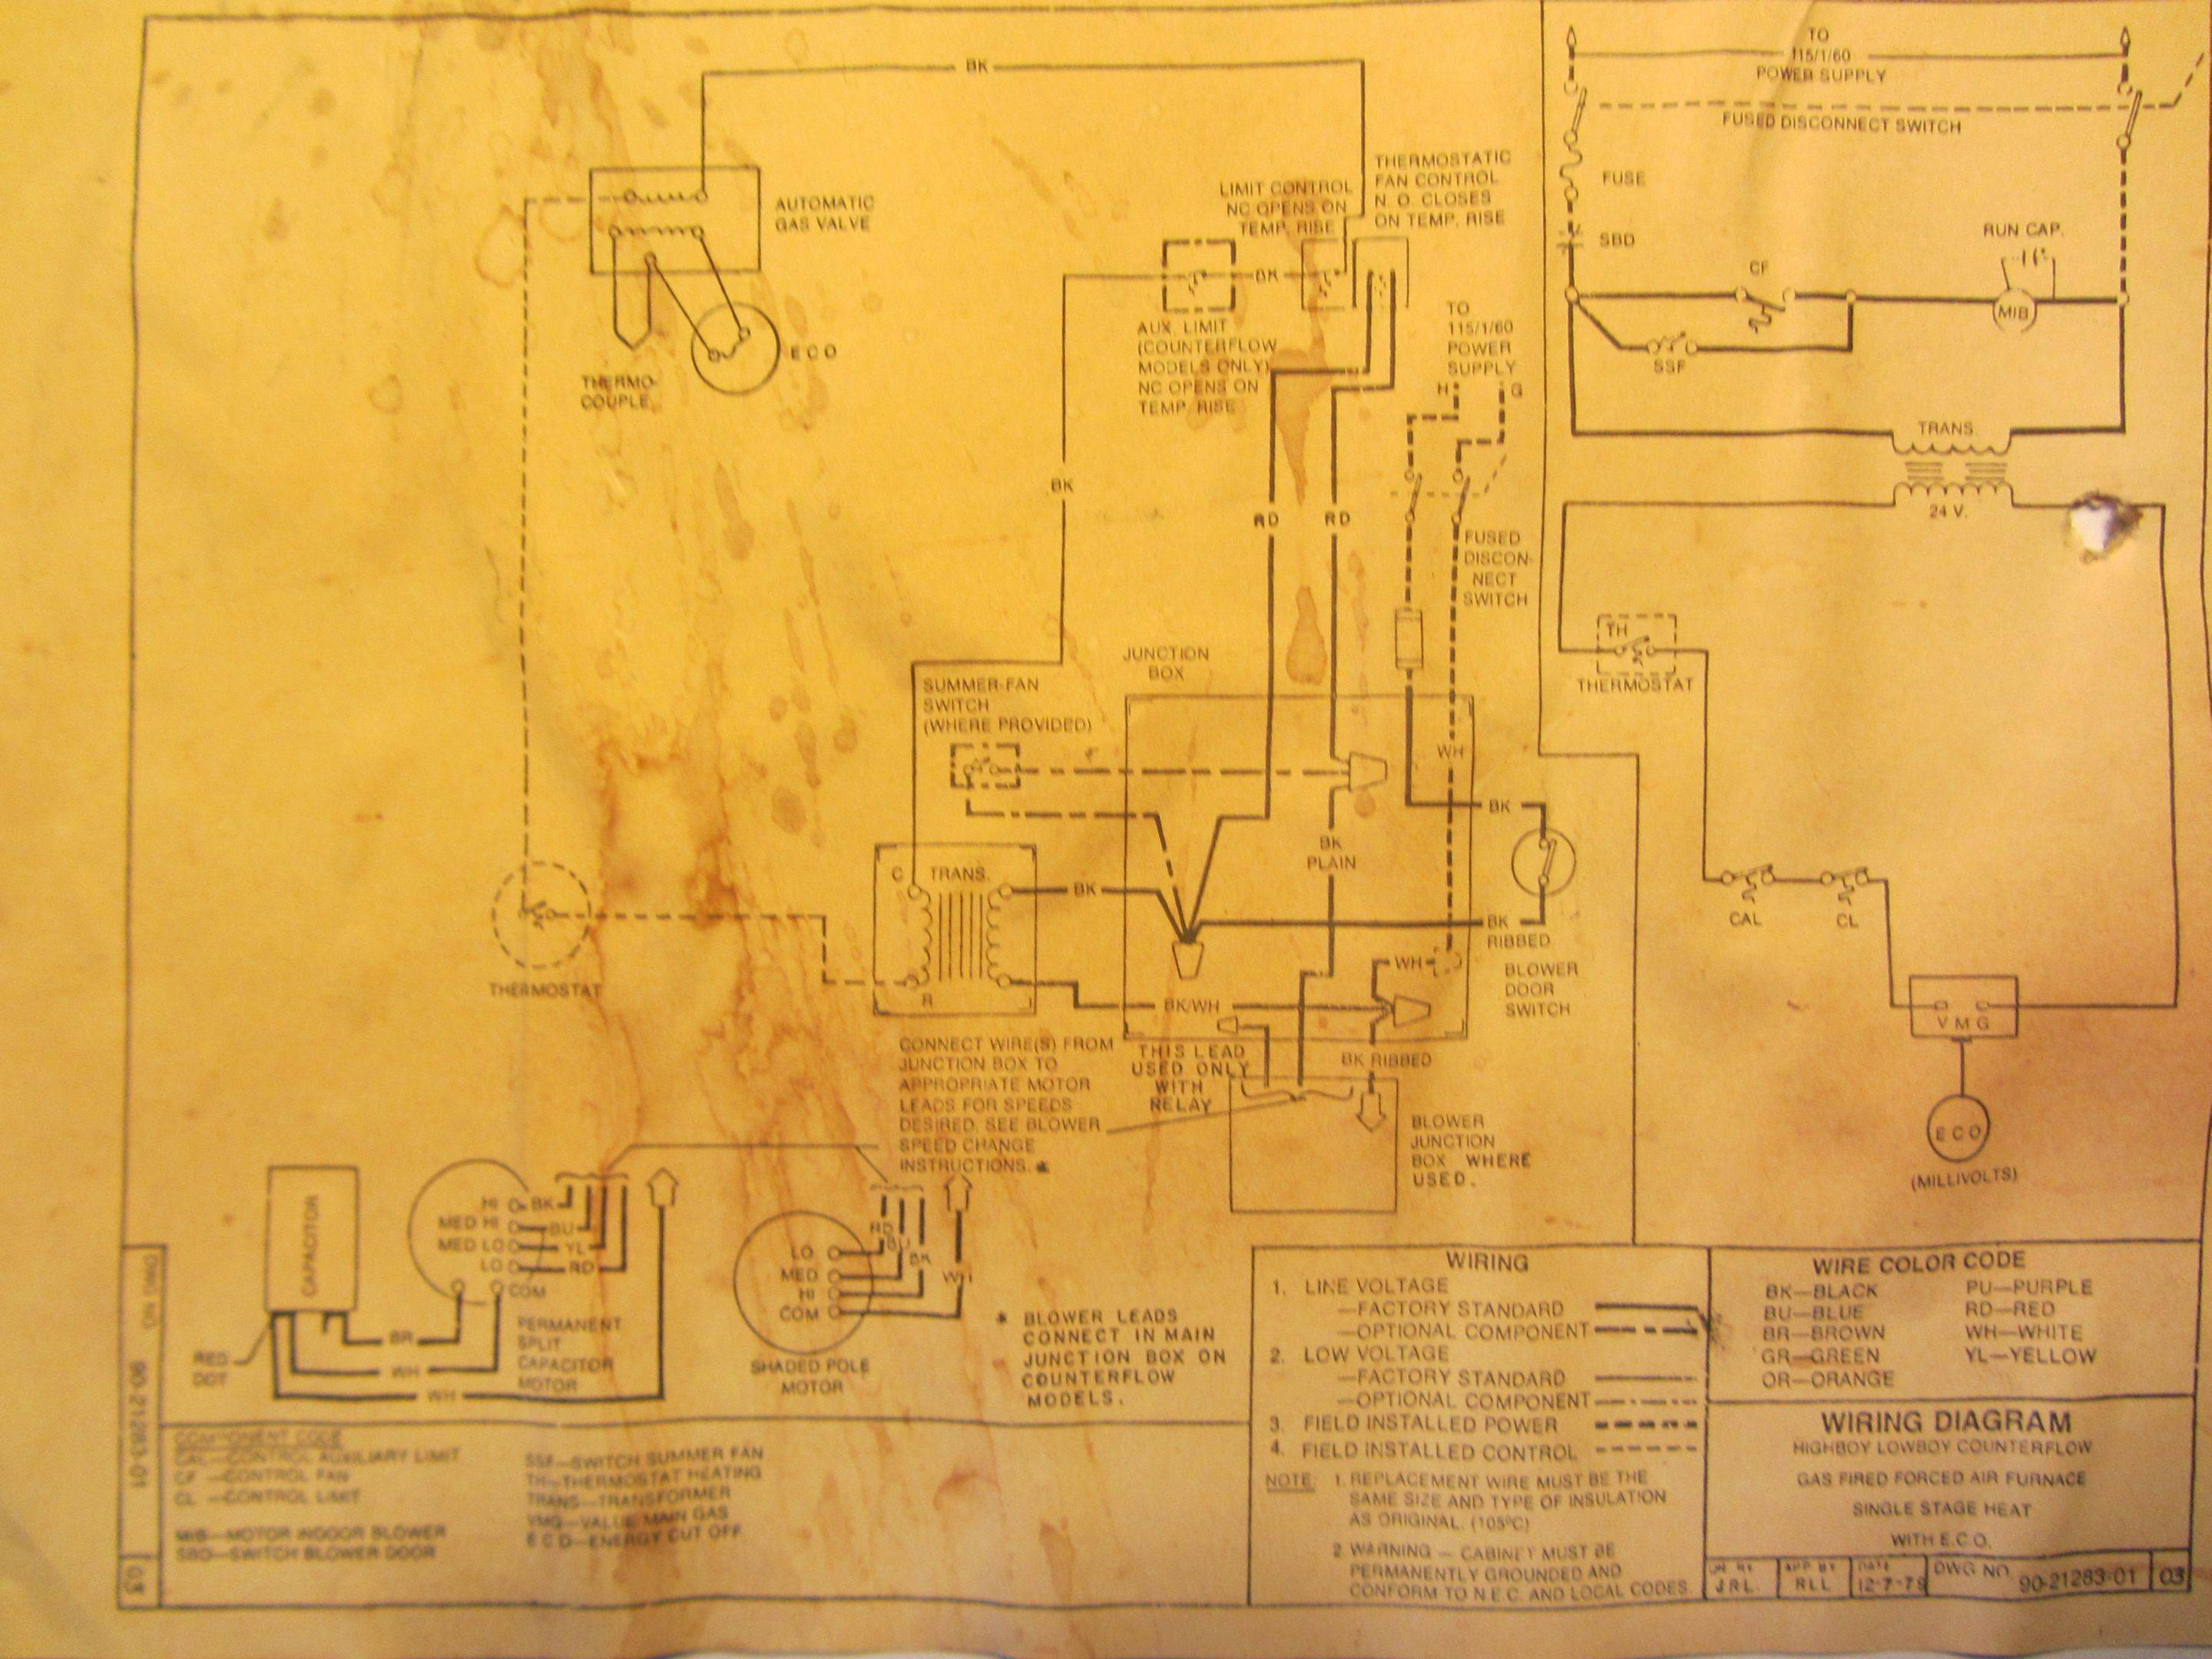 17J5p?resize=665%2C499&ssl=1 rheem ruud wiring diagram wiring diagram  at panicattacktreatment.co